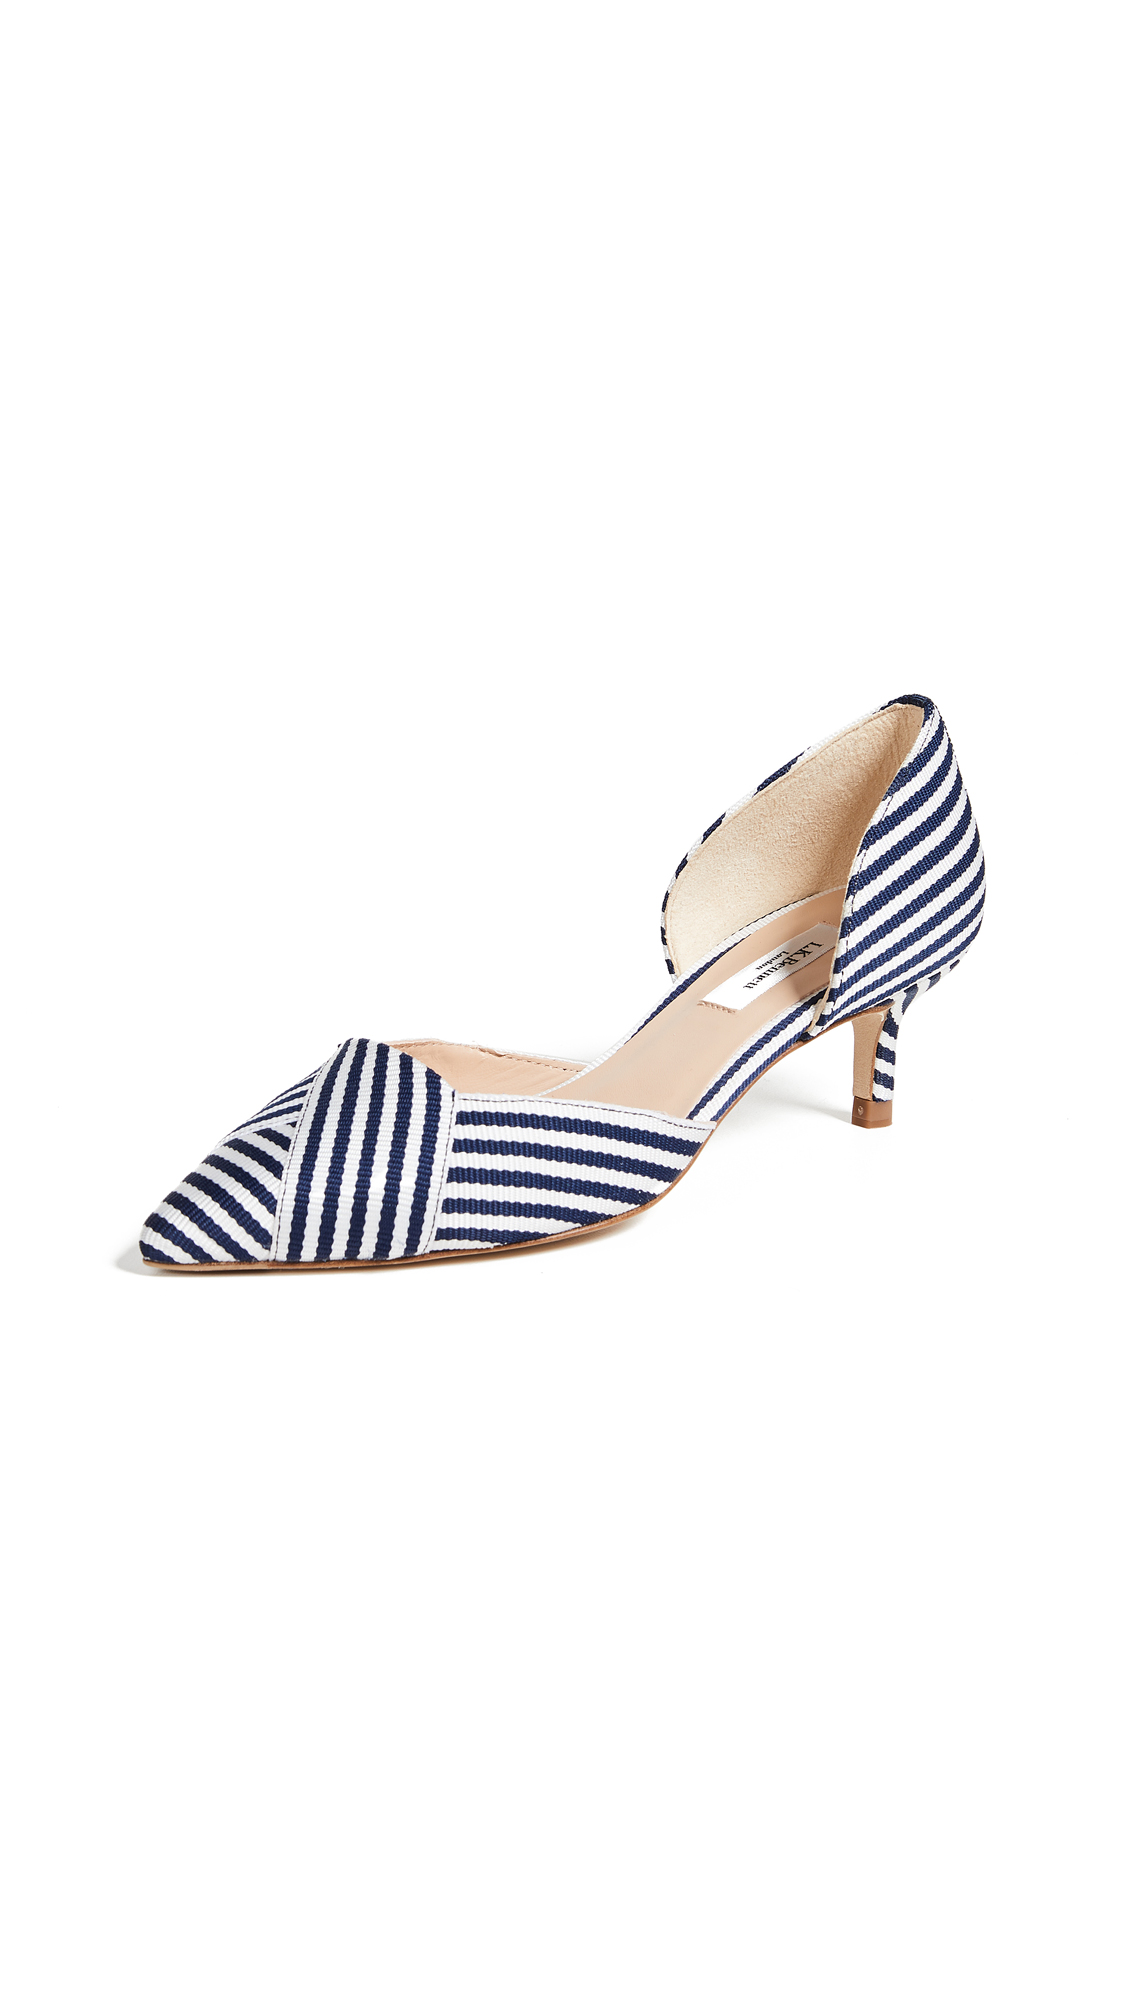 L.K. Bennett Steph dOrsay Pumps - Navy/White